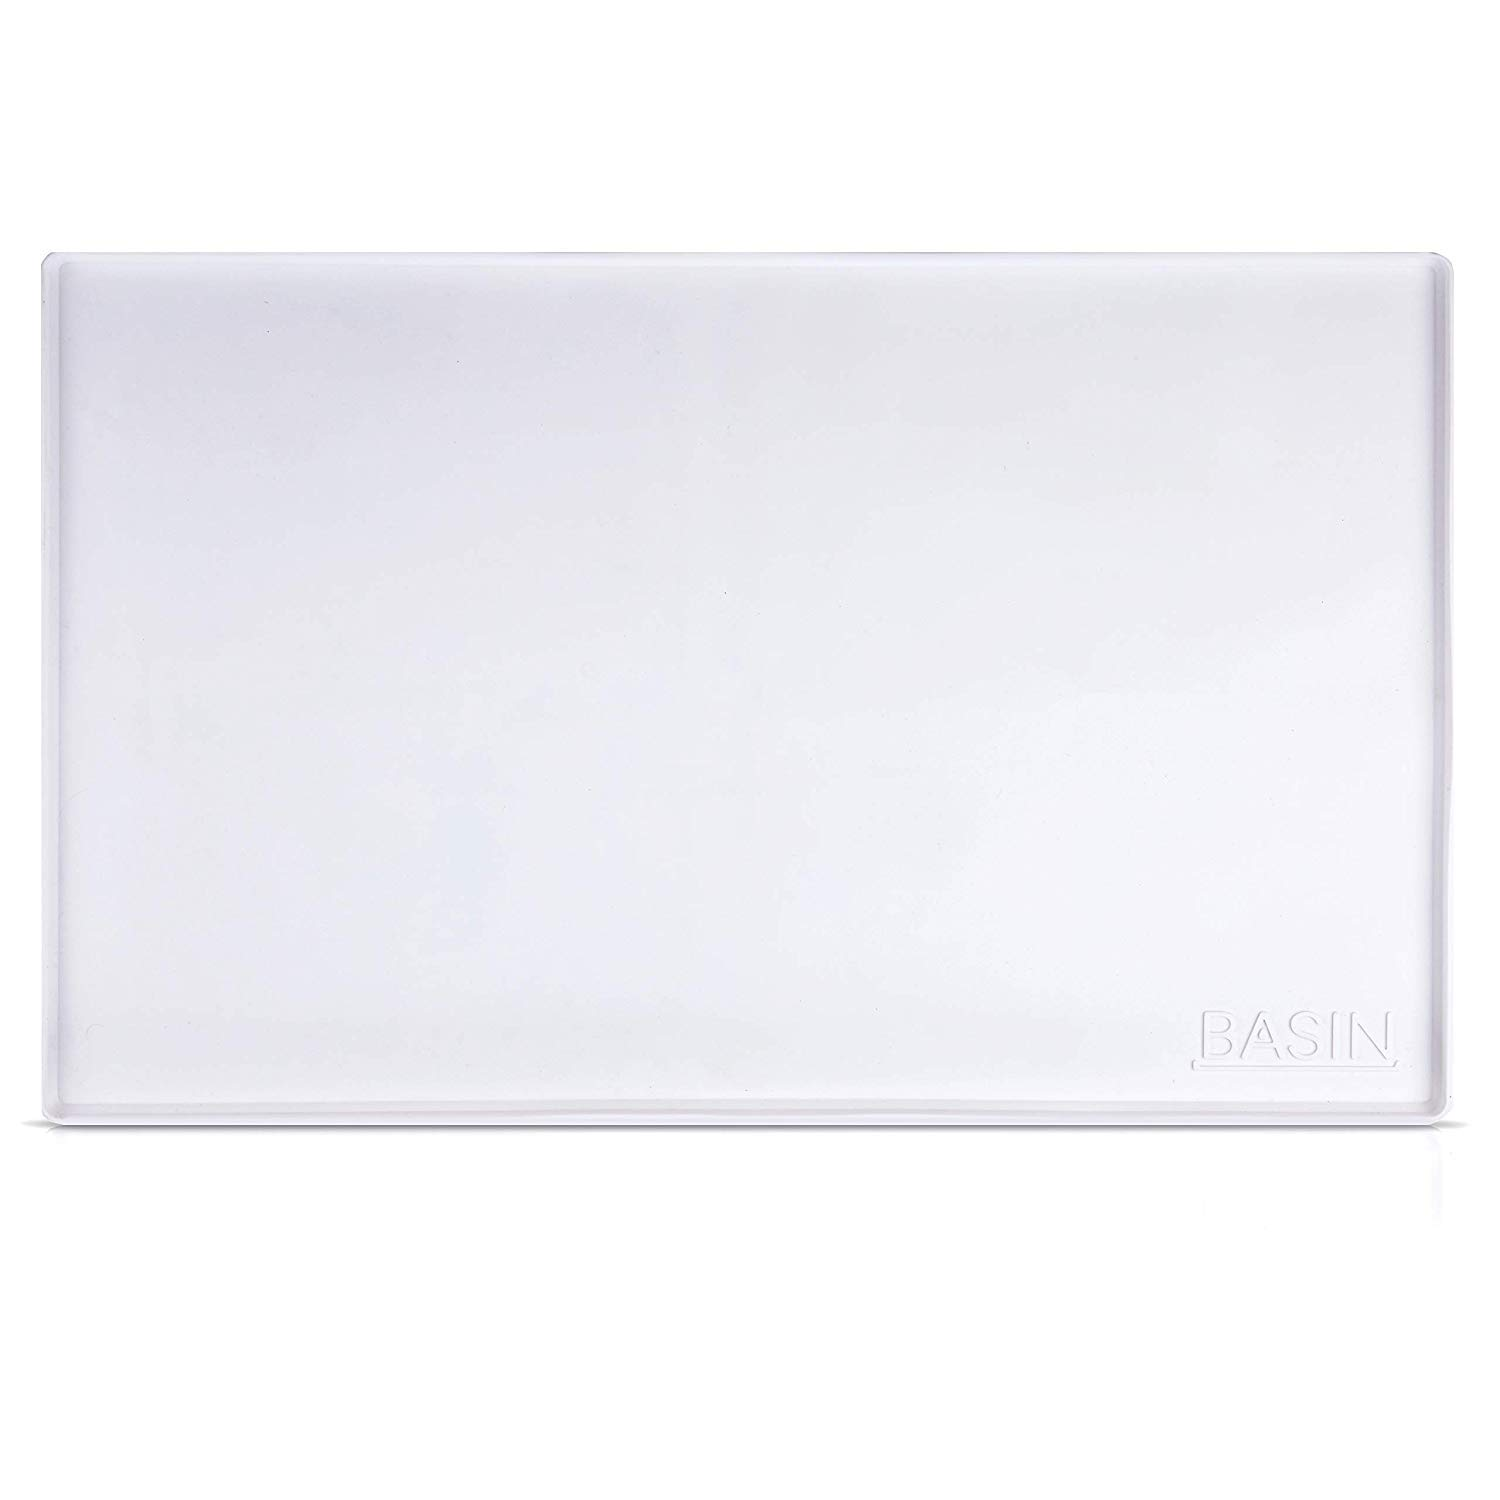 "BASIN White Silicone Under Sink Mat for 36""+ cabinets. (34.25"" x 21"", Holds 2 Gallons) Large Silicone Cabinet Liner with Lip."